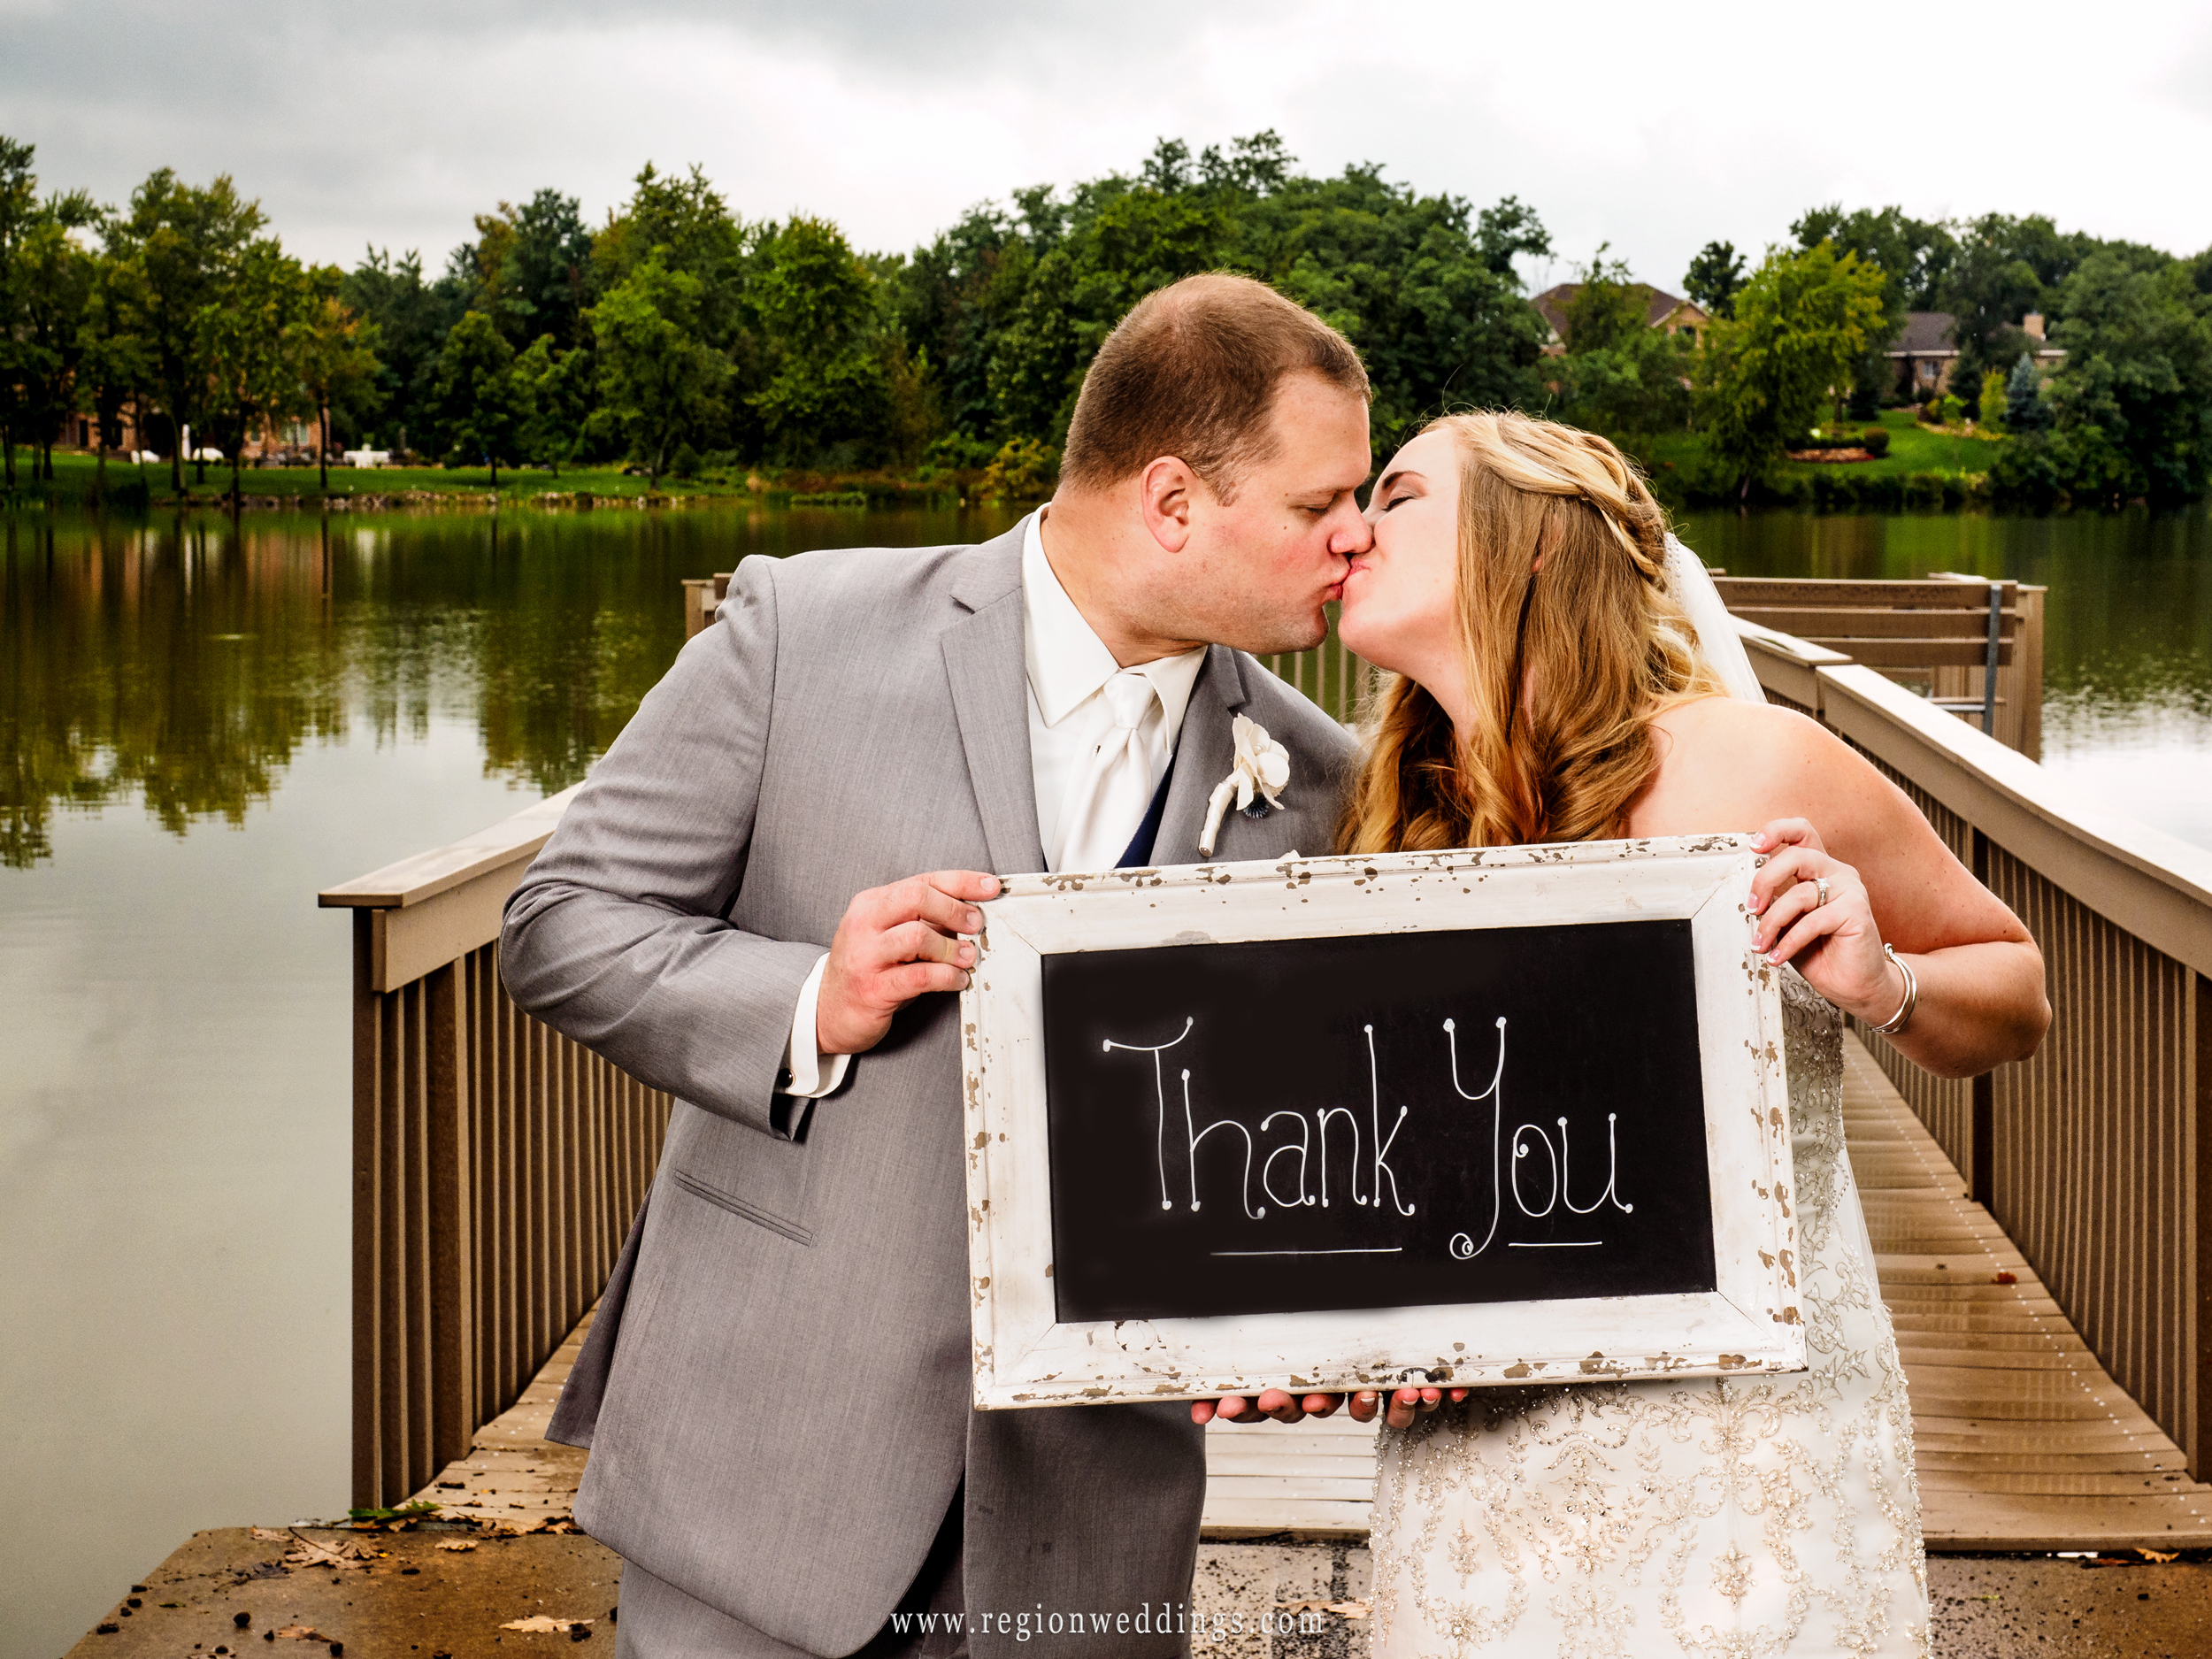 Wedding day Thank You sign.